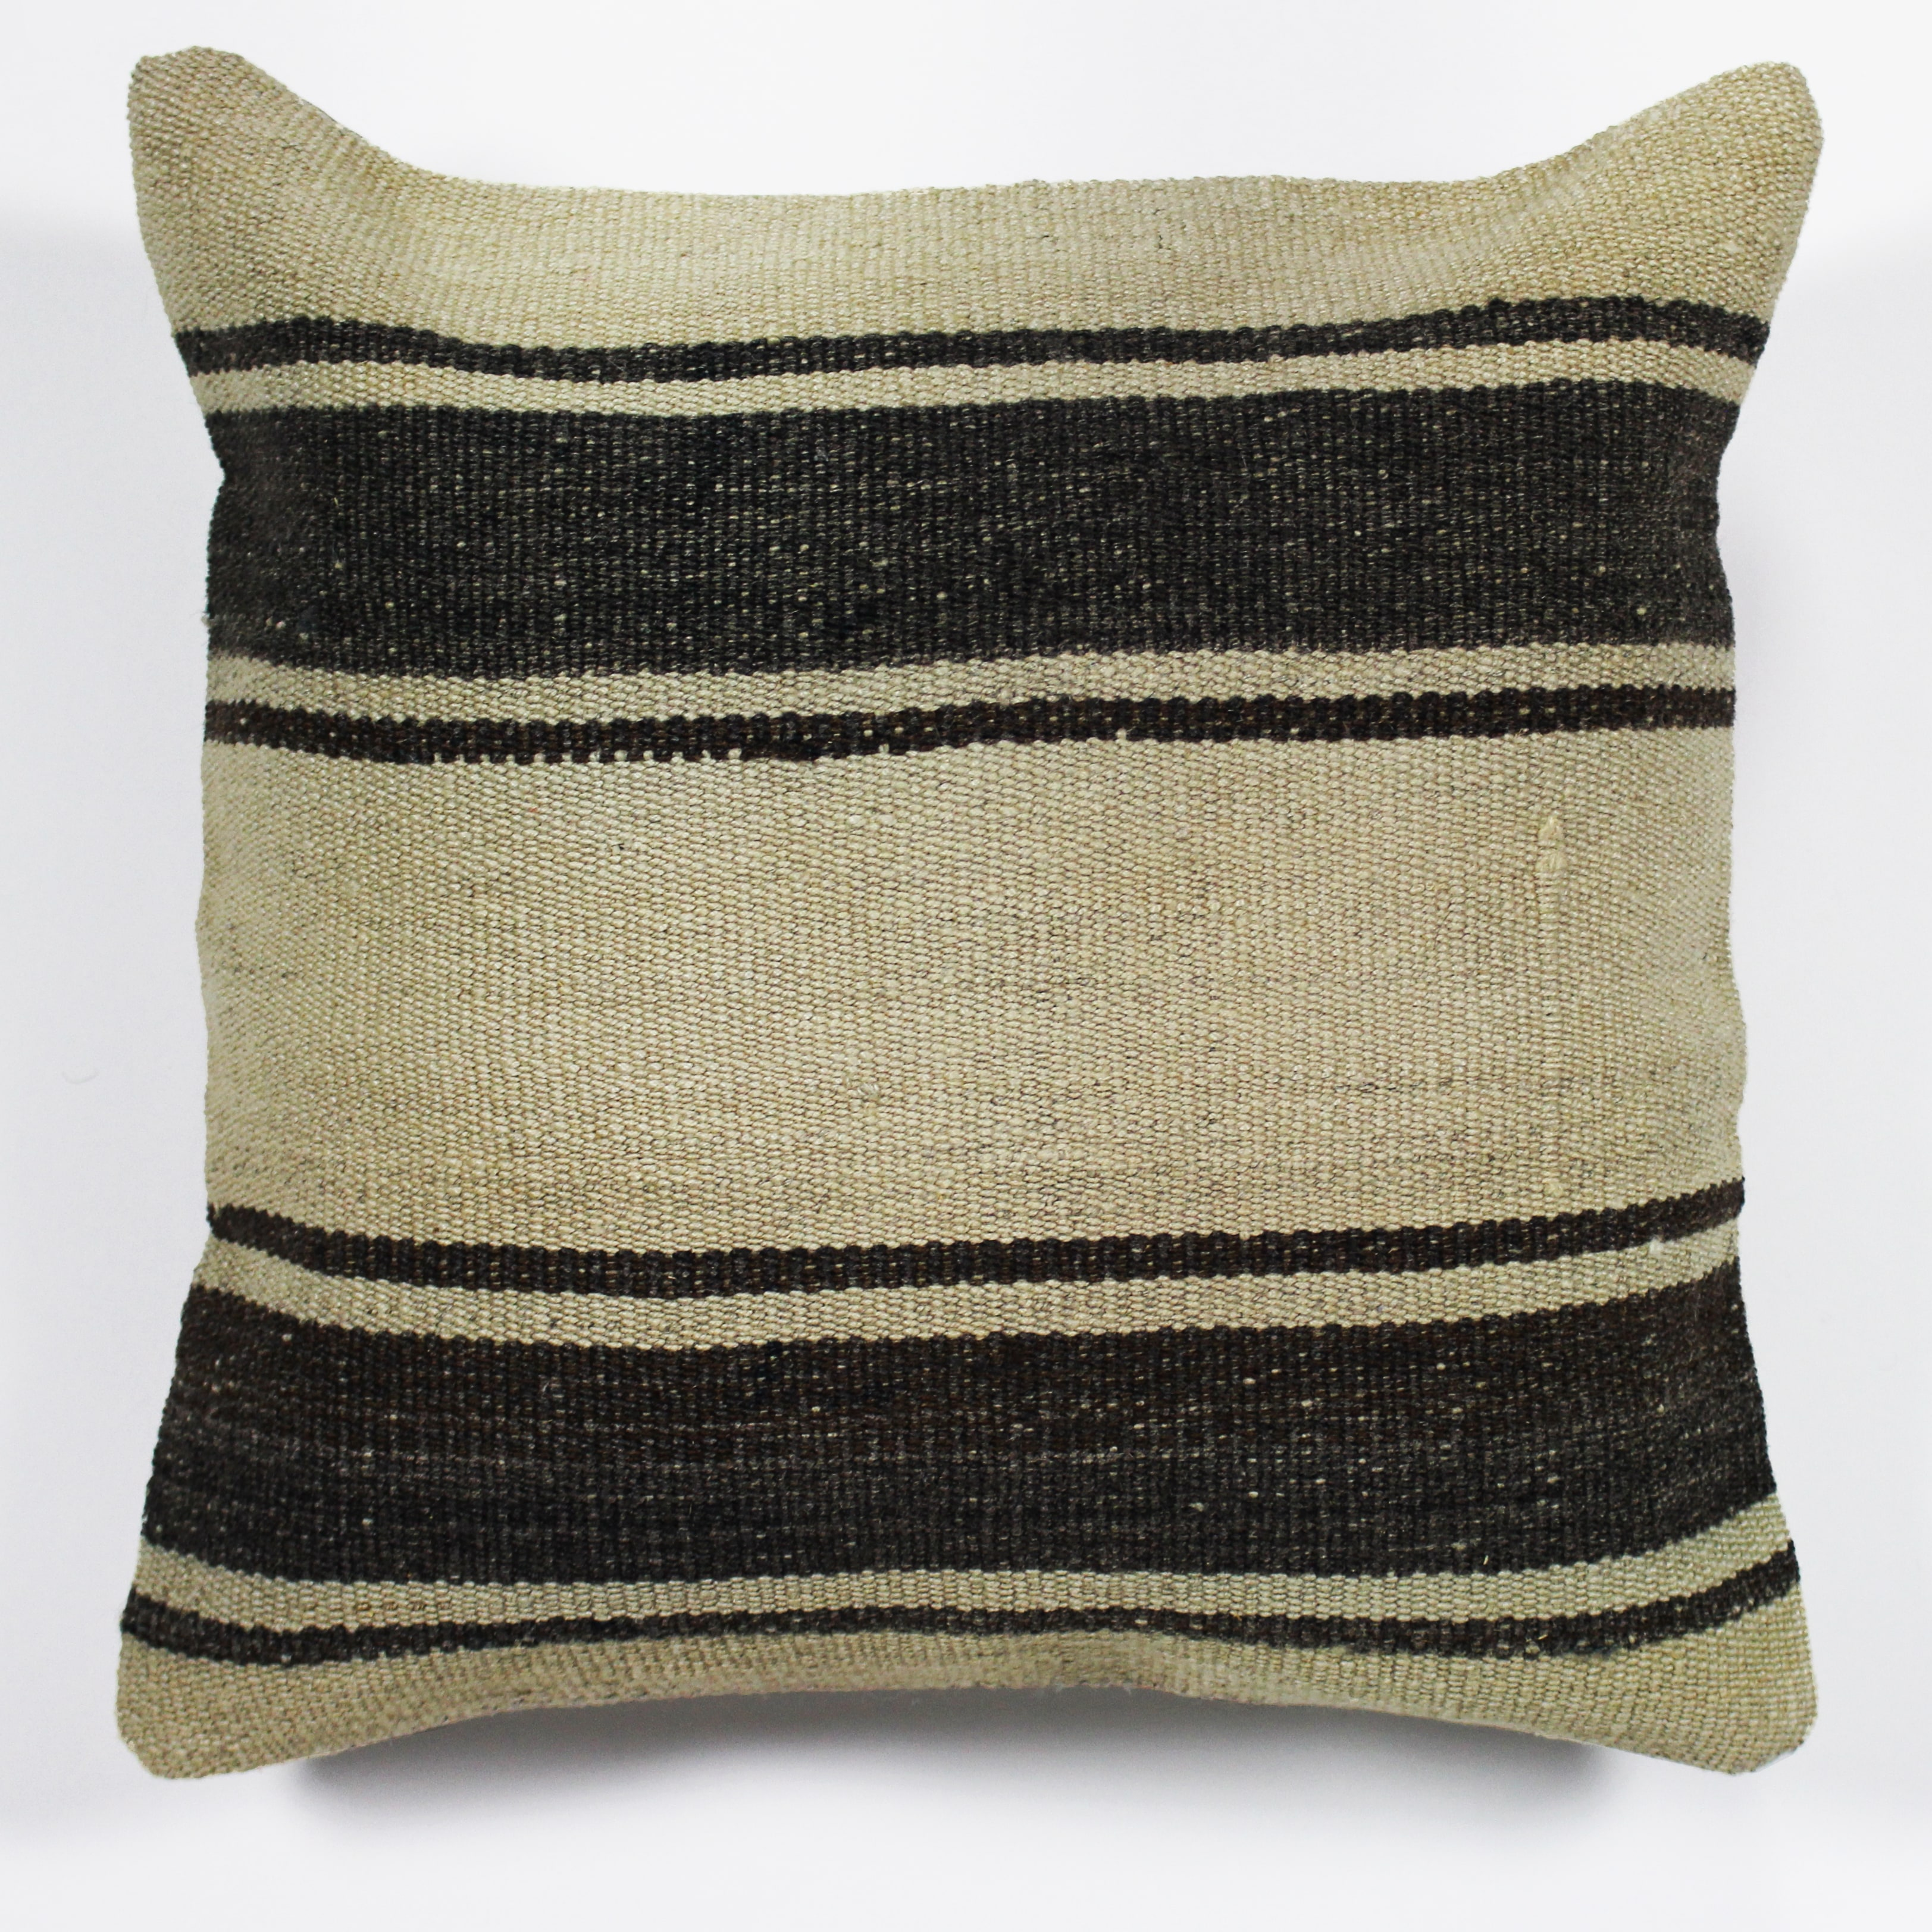 Pillow Black Cream Stripe Collective Rentals Design